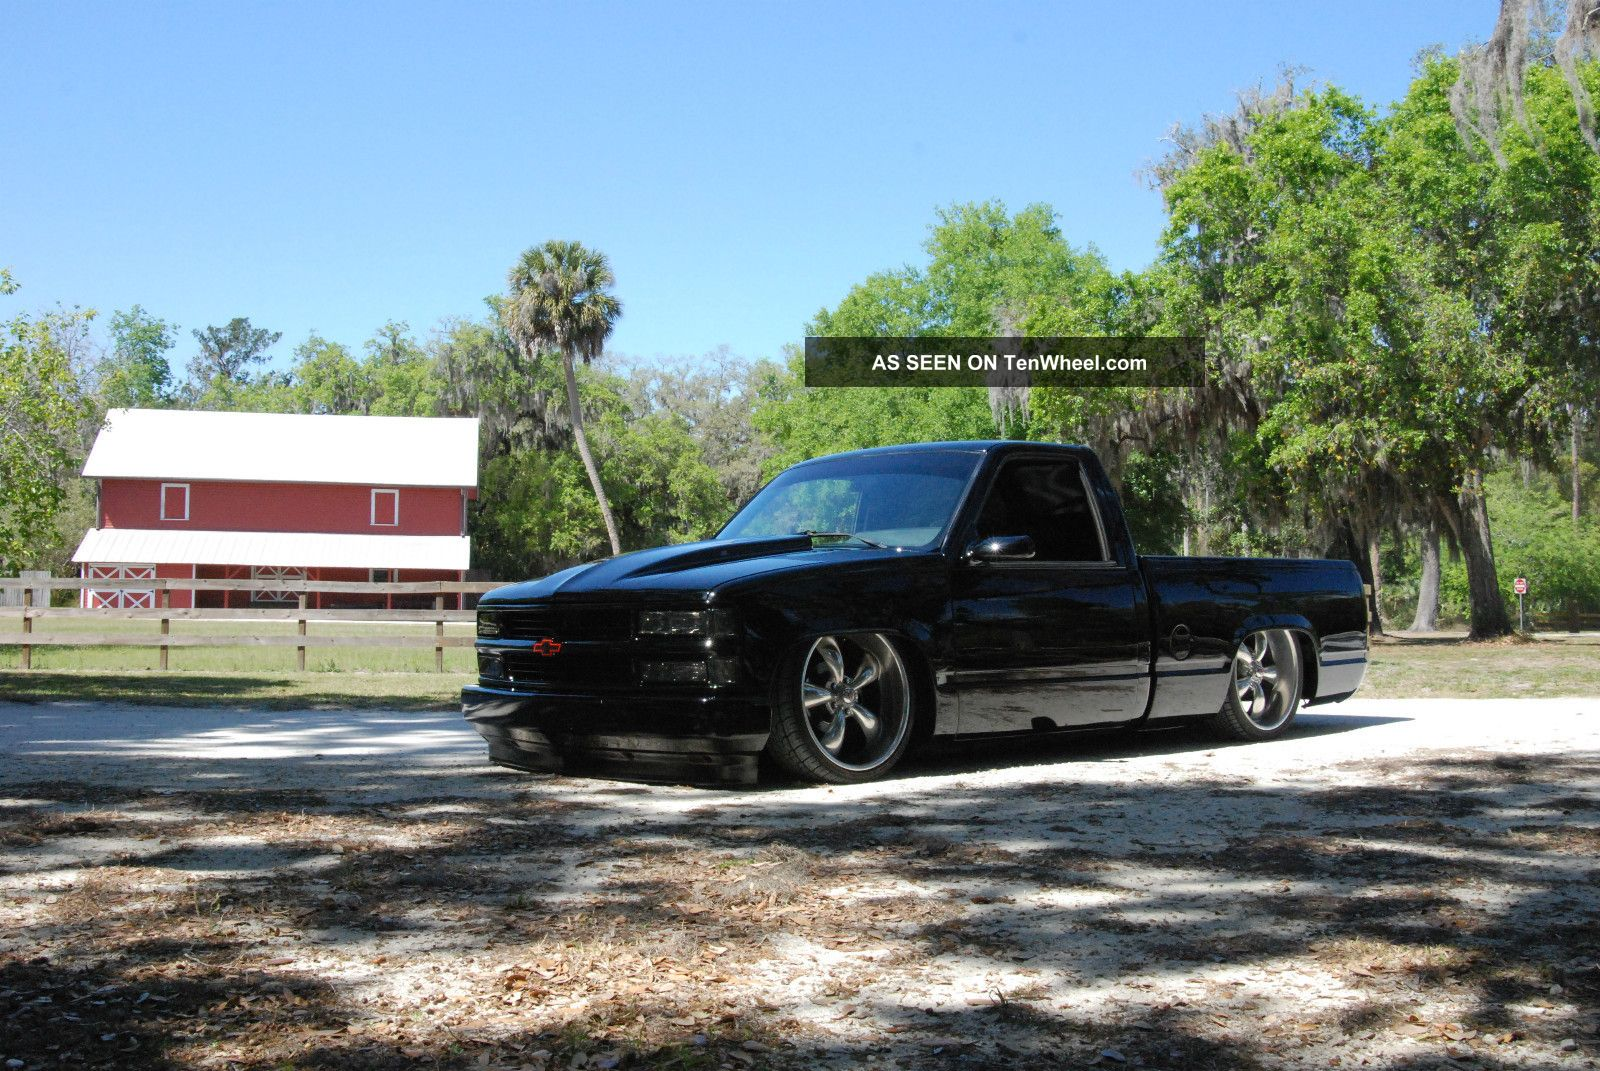 1988 Chevrolet Silverado 1500 Bagged Lowered Custom Hotrod Paint Diagram For Mazda B2200 Engine